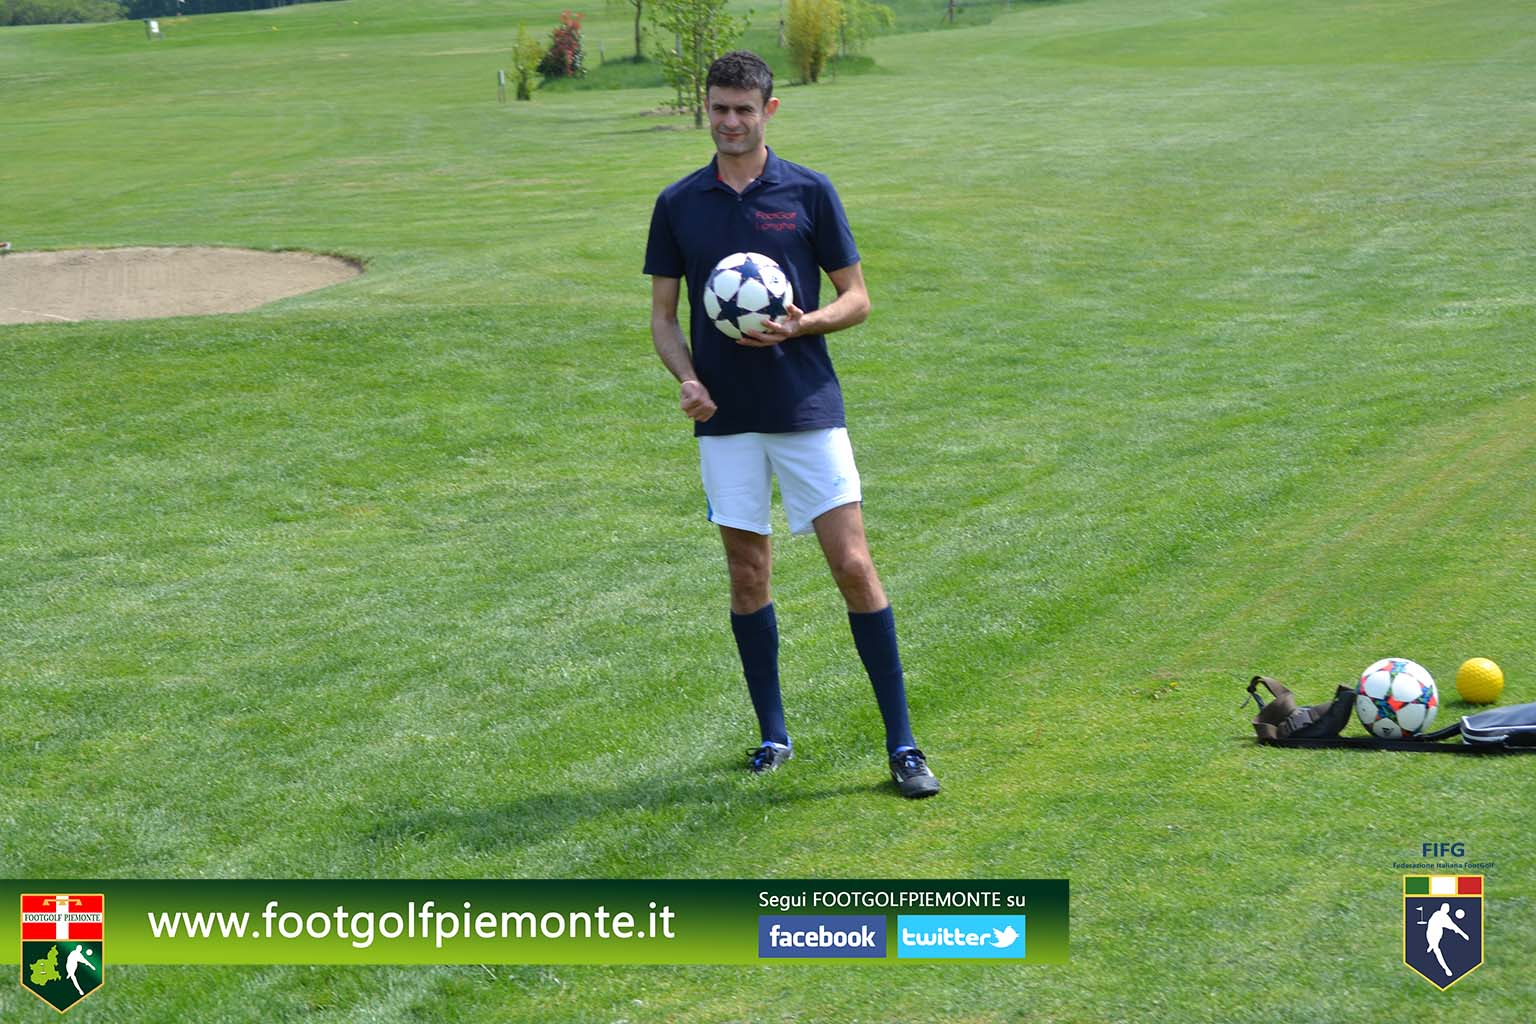 FOTO 9 Regions' Cup Footgolf Piemonte 2016 Golf Città di Asti (At) 30apr16-68